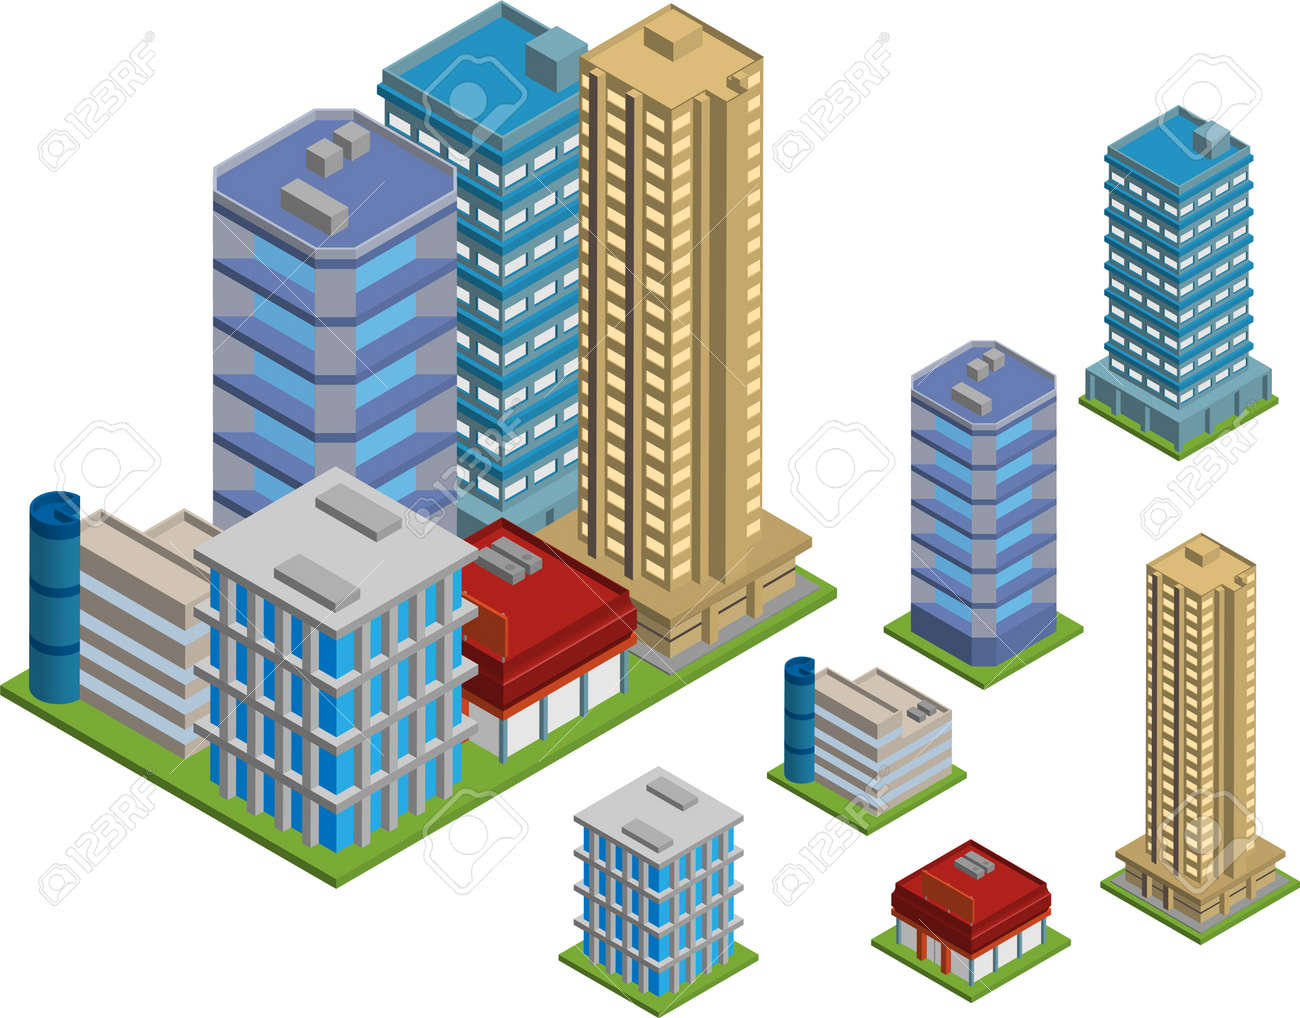 Vector pack of various isometric buildings with tiled elements, ready to use for city building game - 16240844